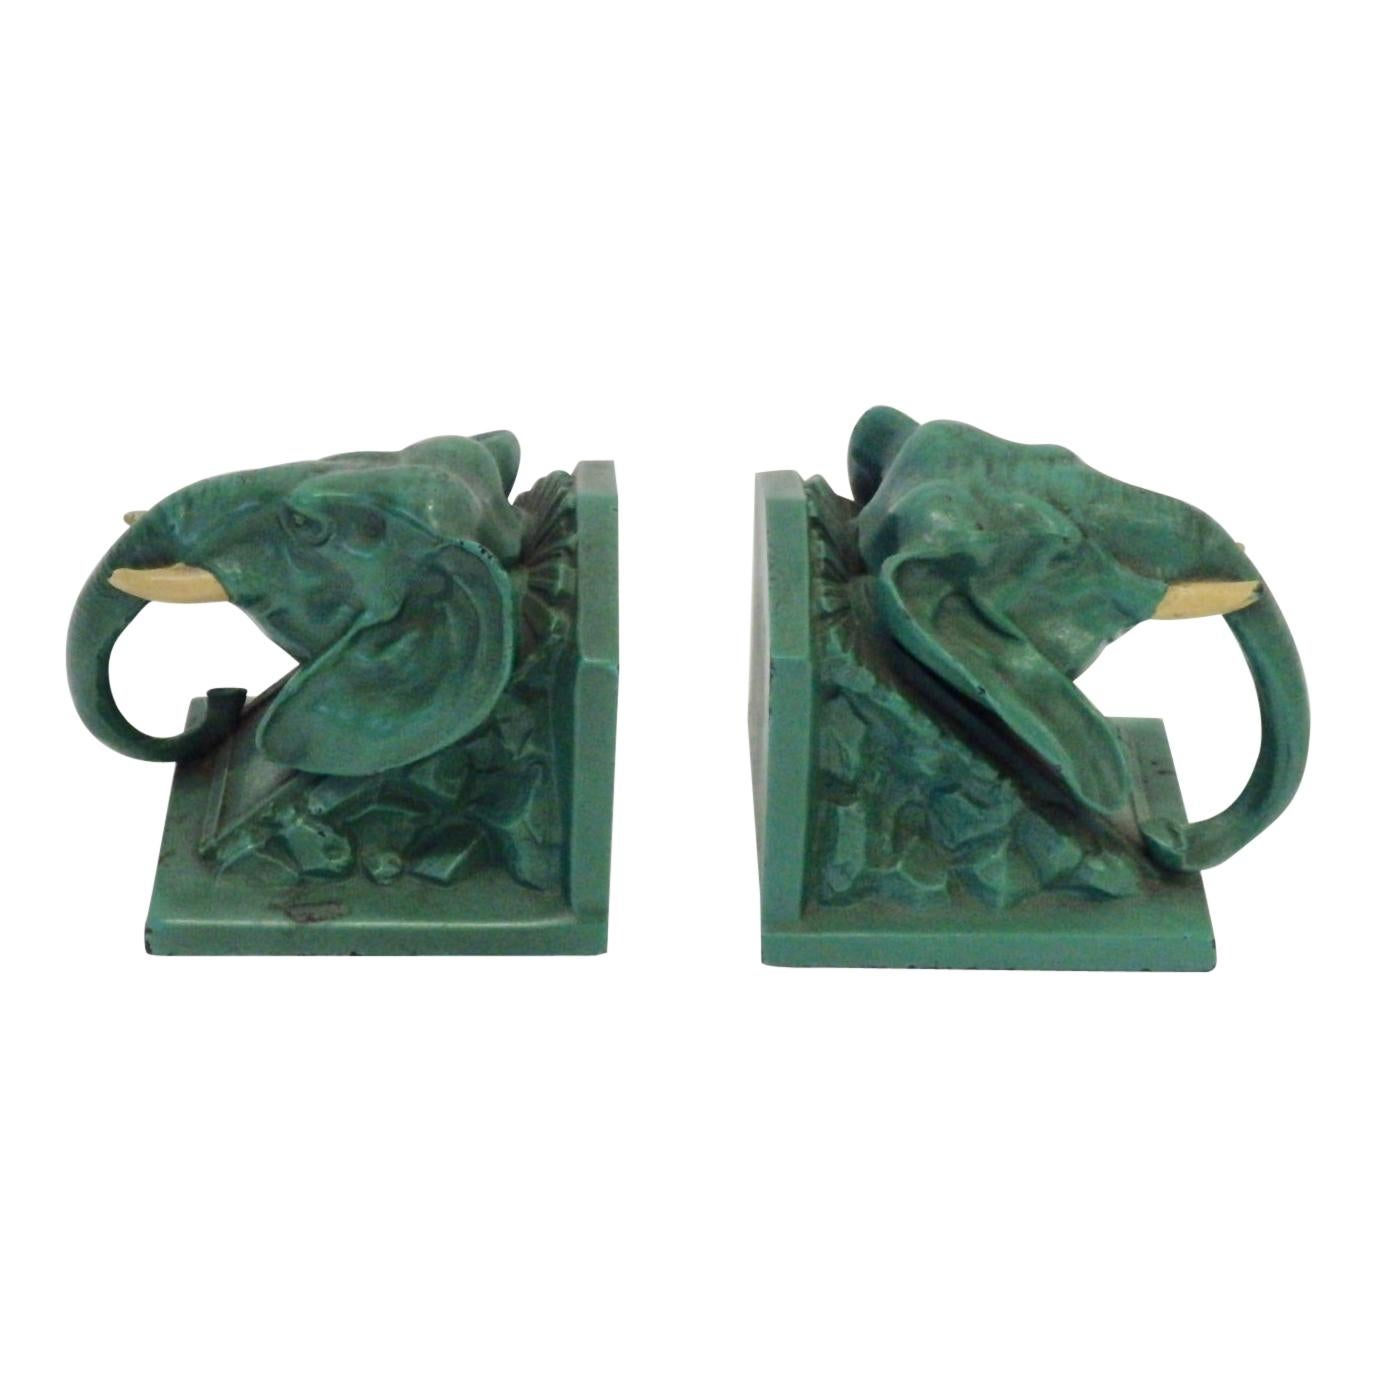 Pair of 1940s Frankart Style Elephant Bookends